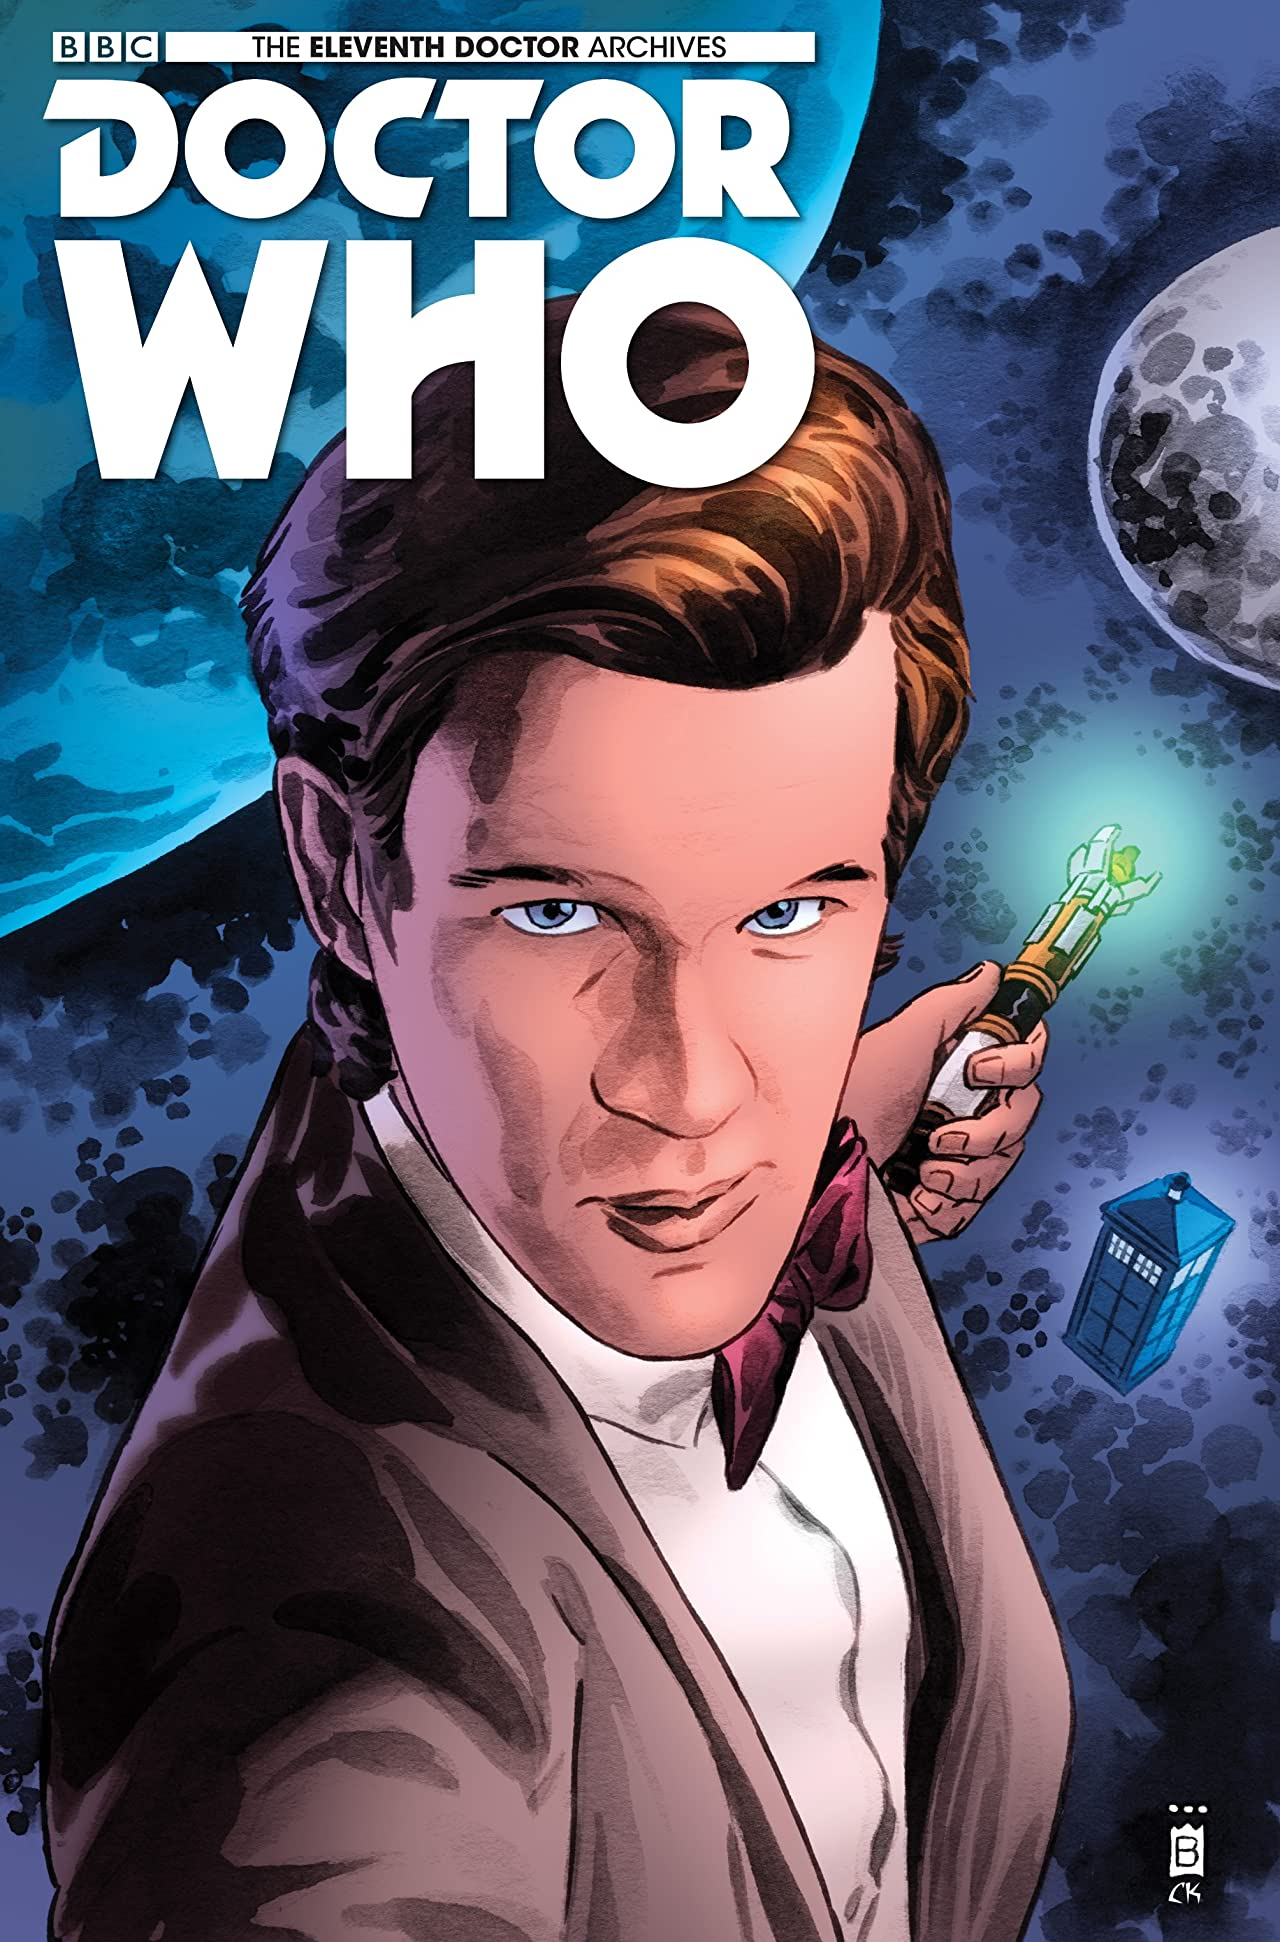 Doctor Who: The Eleventh Doctor Archives #29